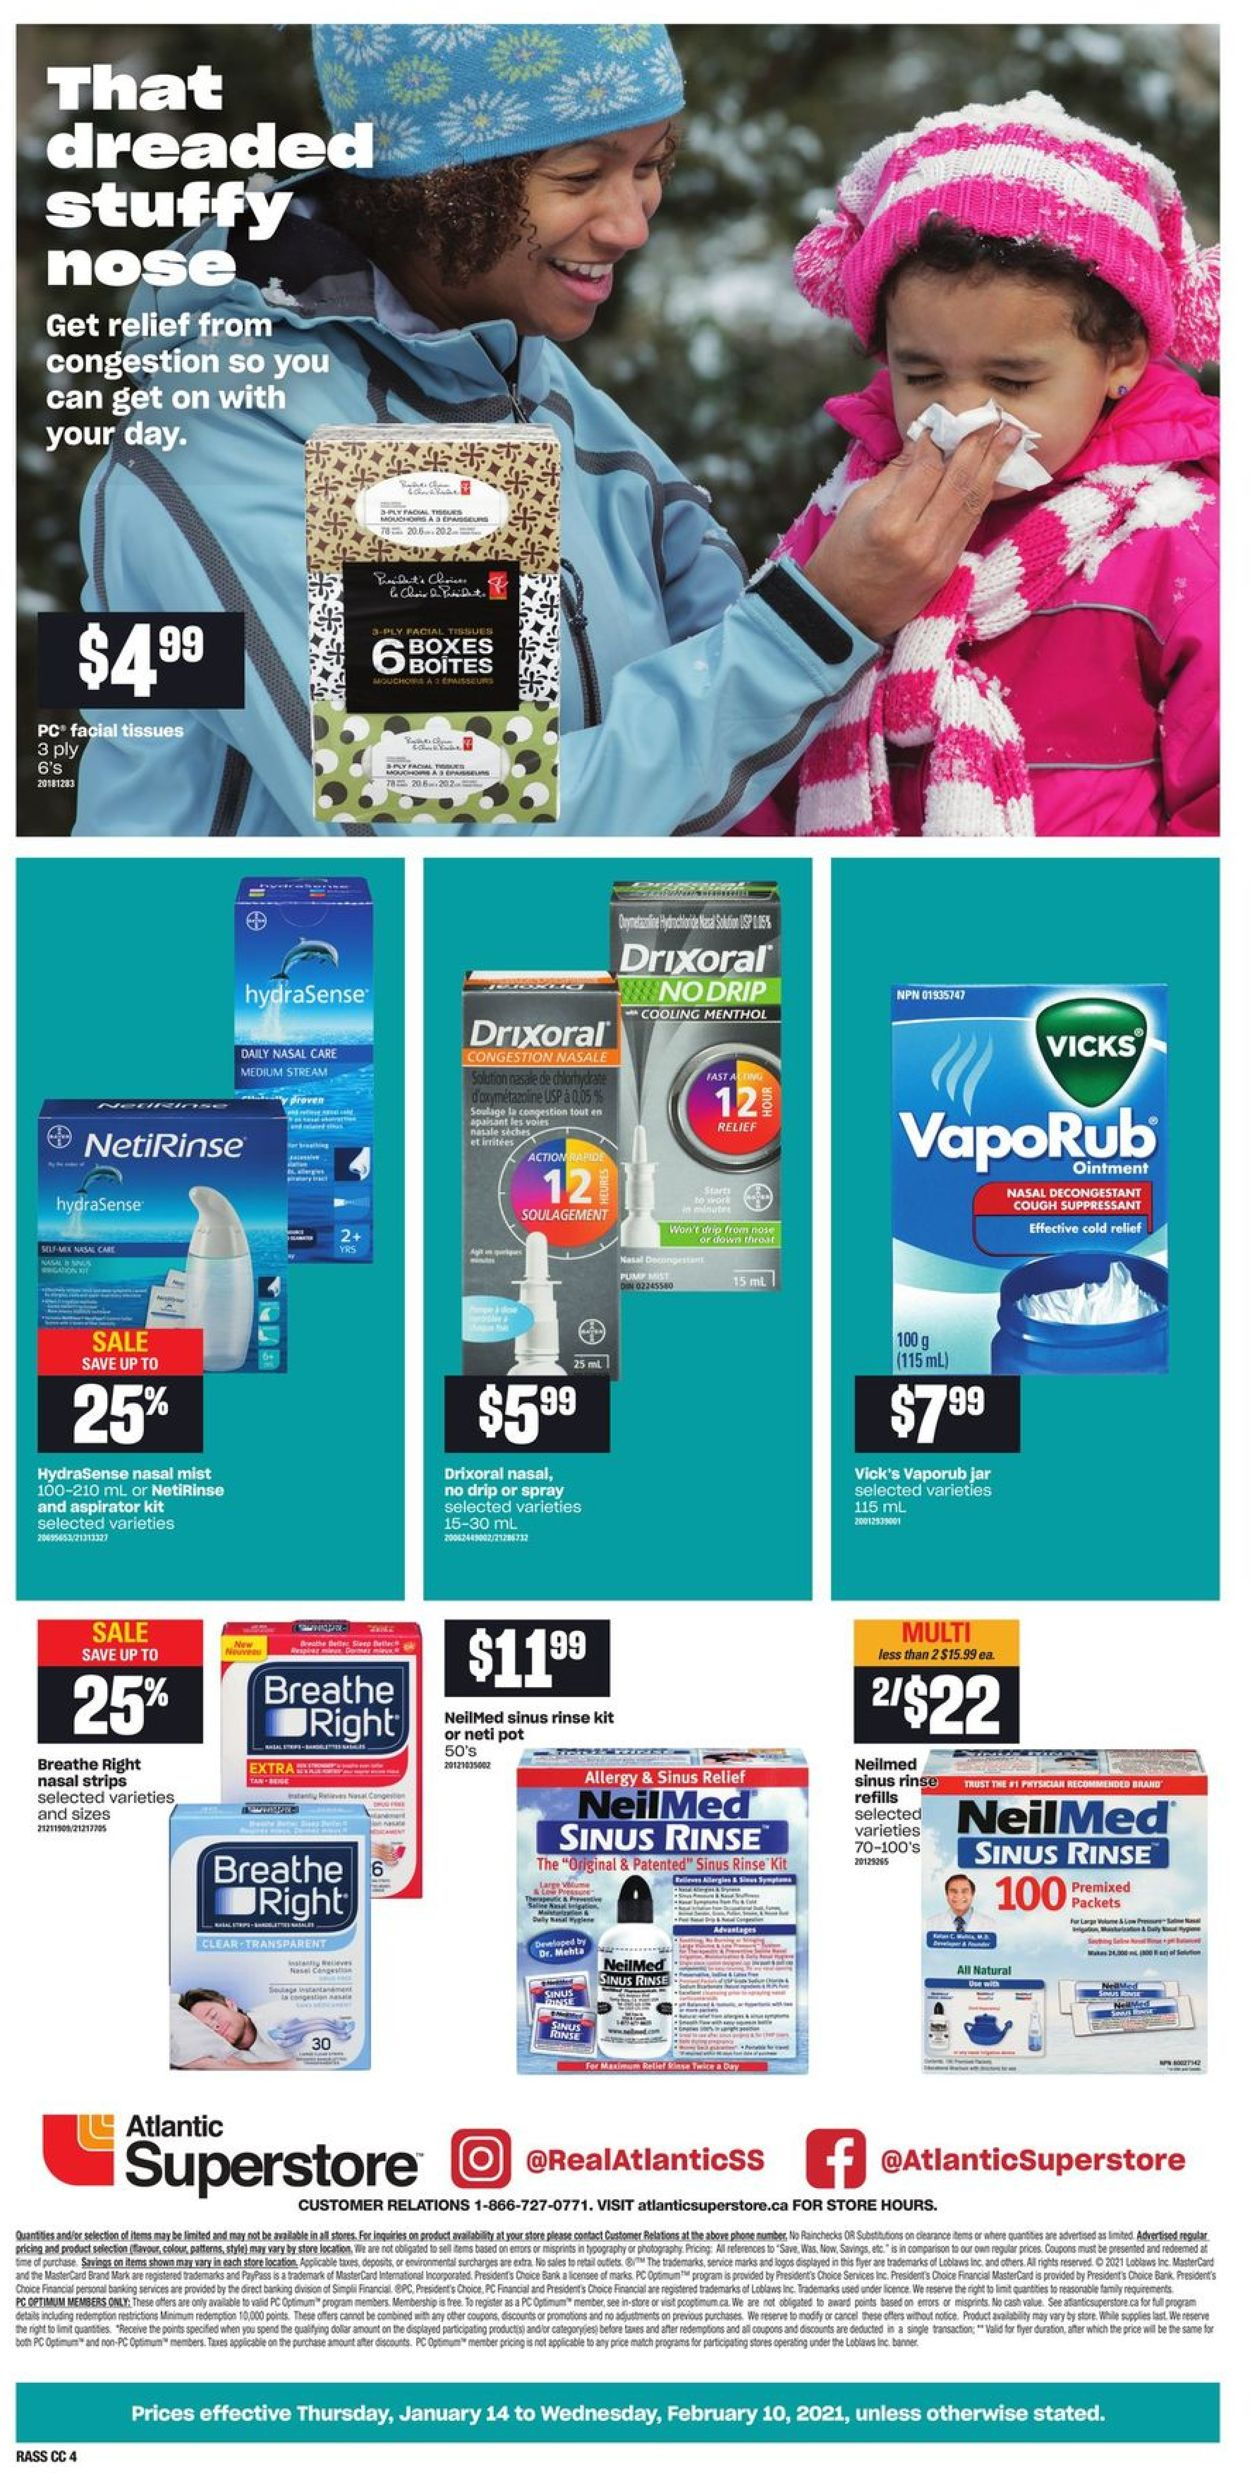 Atlantic Superstore - Cough & Cold Flyer - 01/14-02/10/2021 (Page 4)